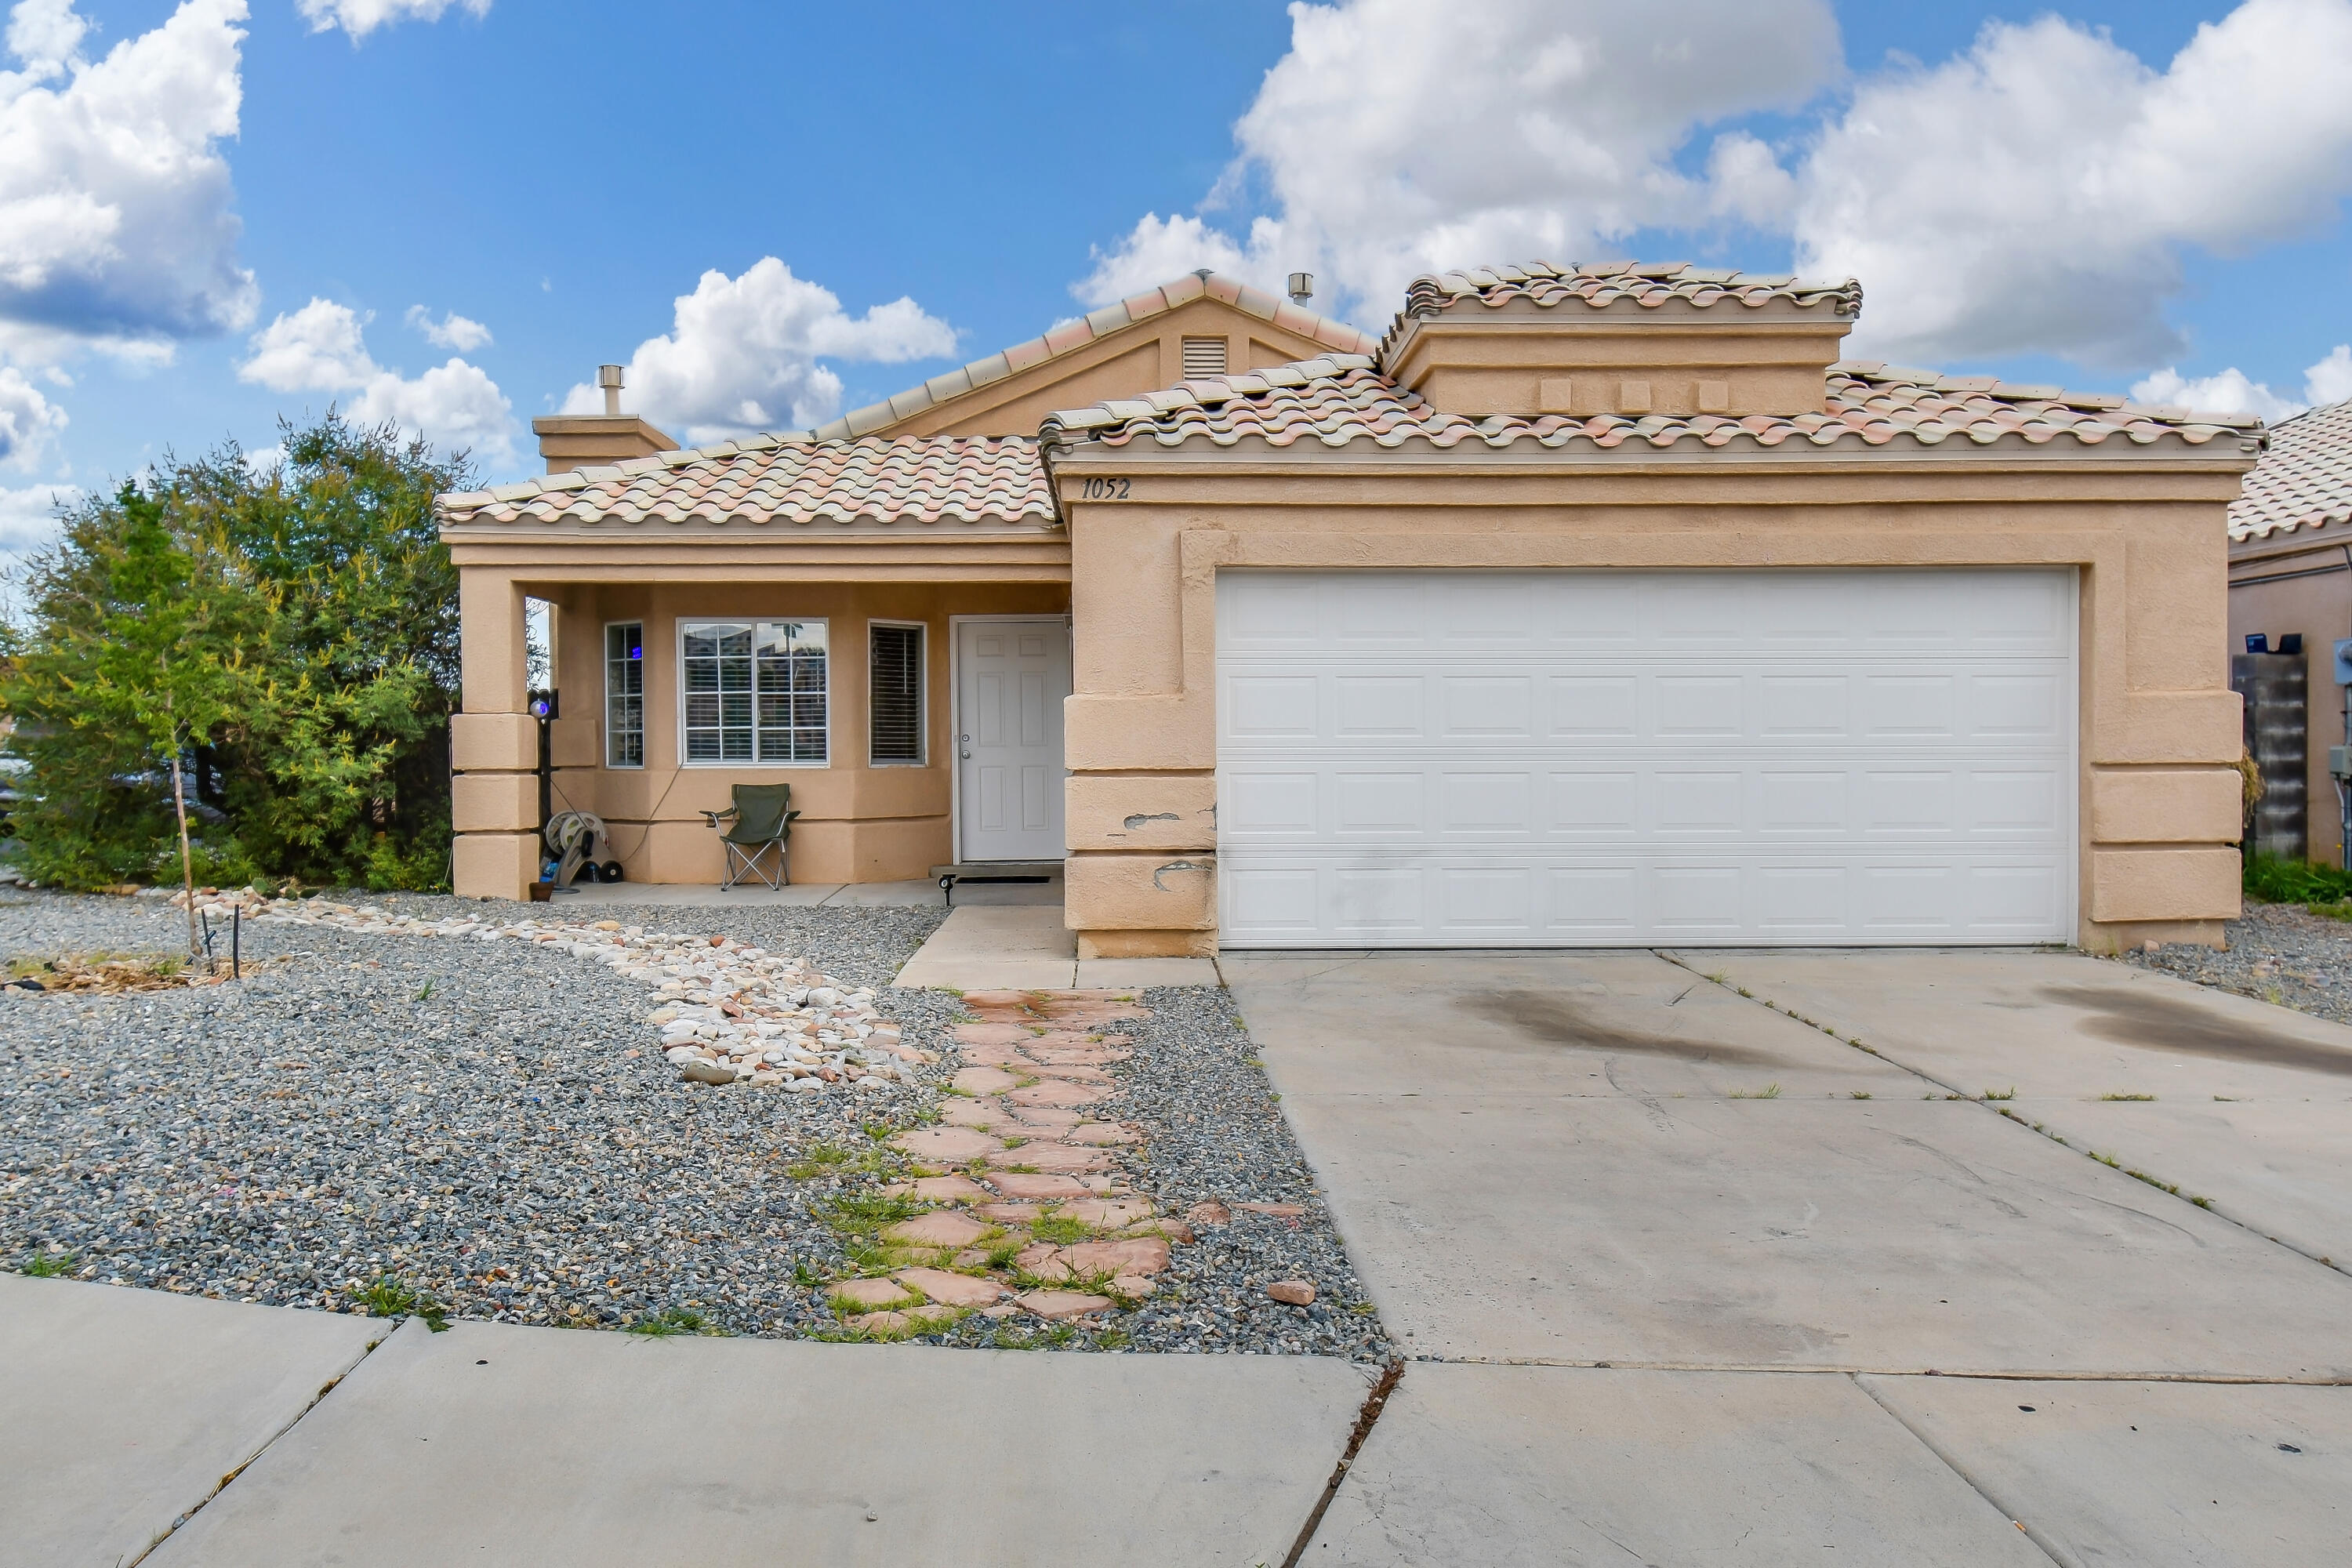 Very Nice Home! Ready for New Owners!  Great Floorplan! Large Kitchen with Island Plus newer stainless steel appliances!   Granite Countertops! New fixtures! 2 living areas Plus a gas fireplace! Large Master Bedroom and Bath!  Corner lot! Beautiful backyard! Must See!